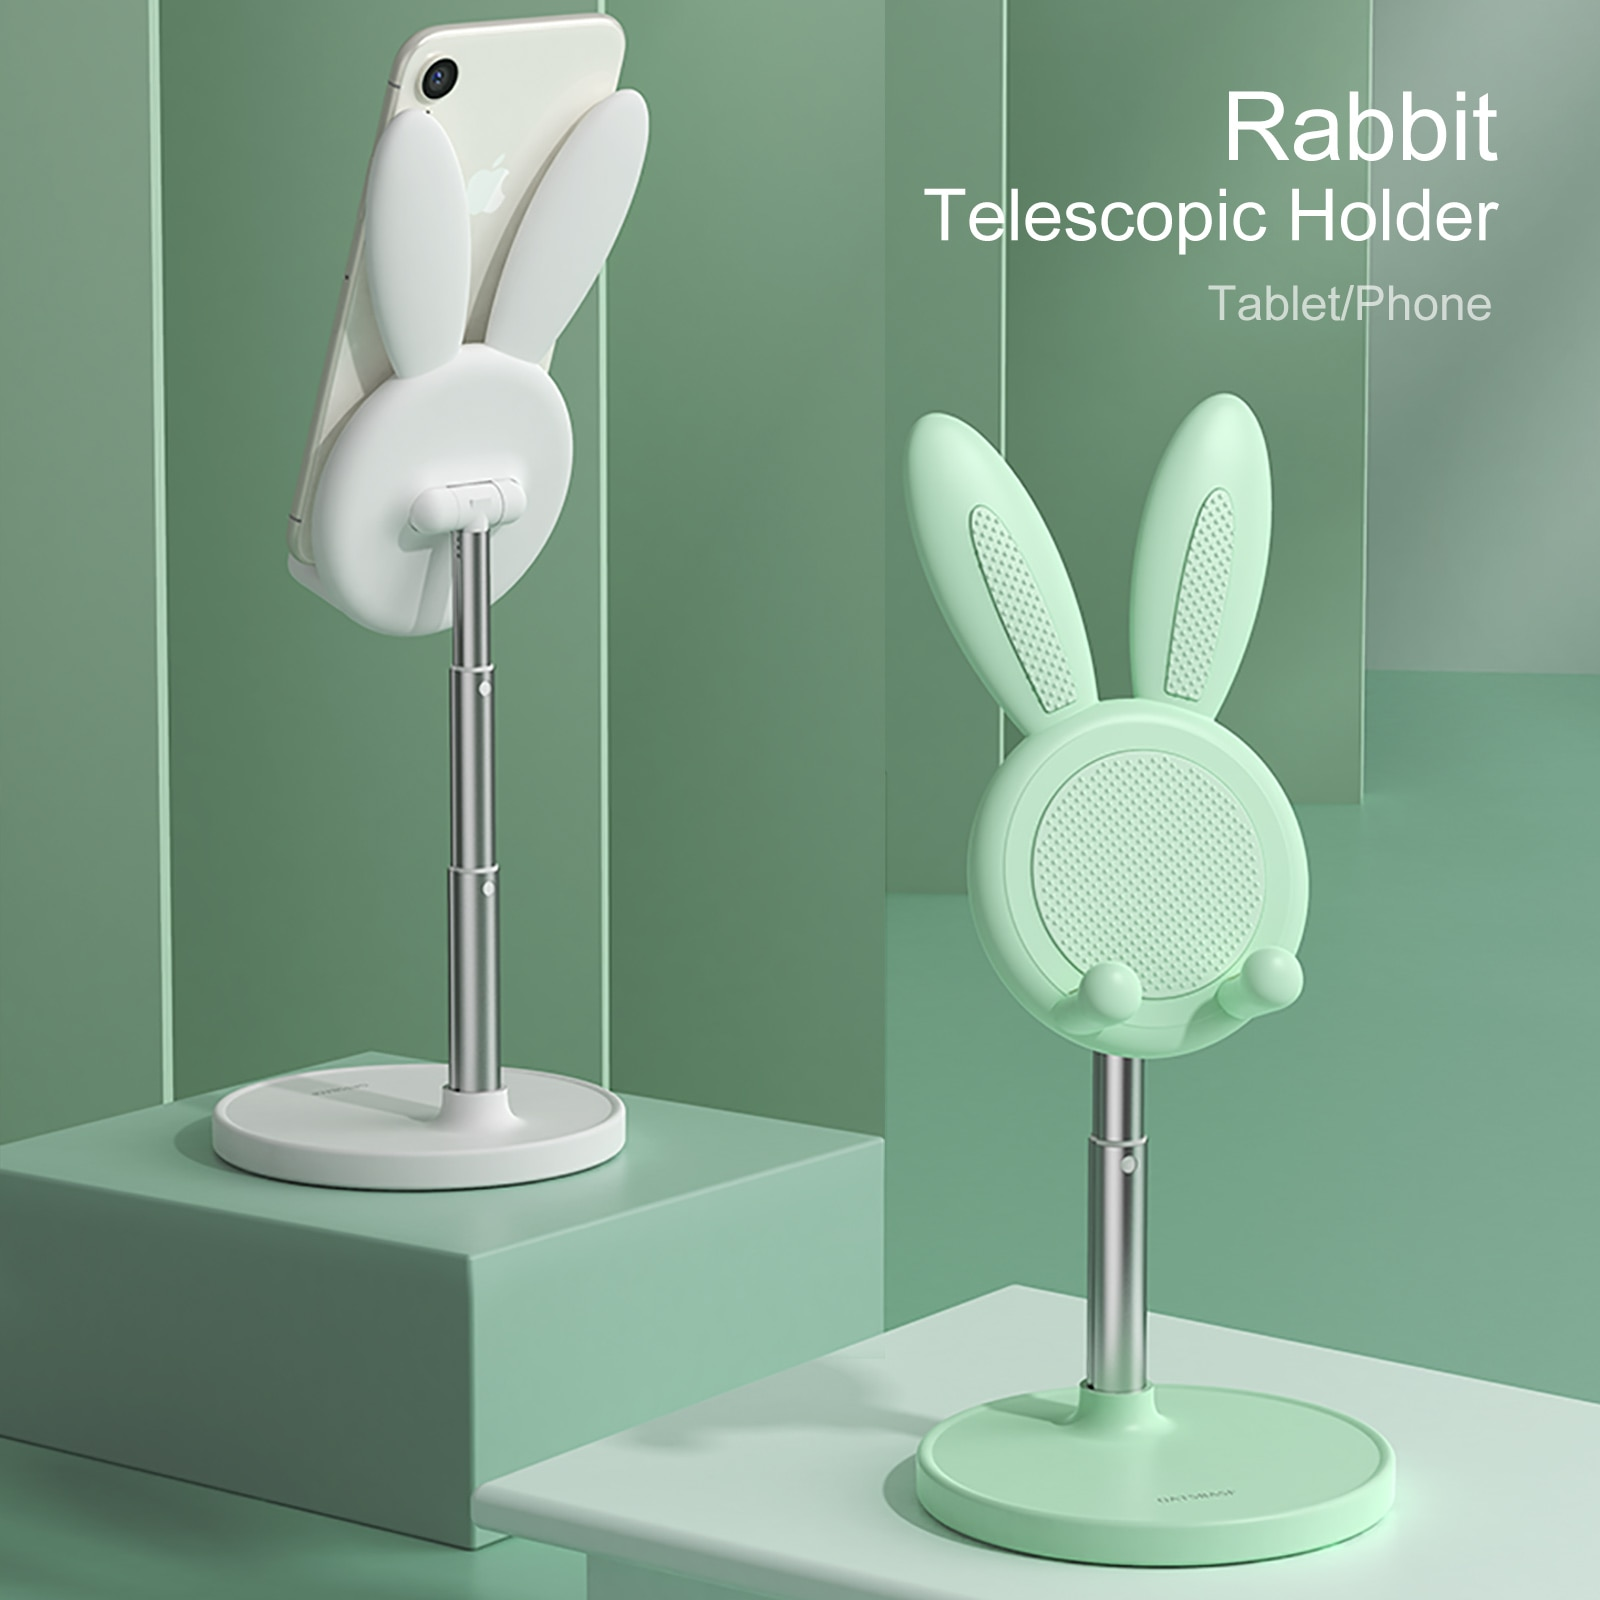 Cute Bunny Rabbit Desktop Phone Stand Portable Universal Adjustable Desk Tablet Holder For IPhone Hu